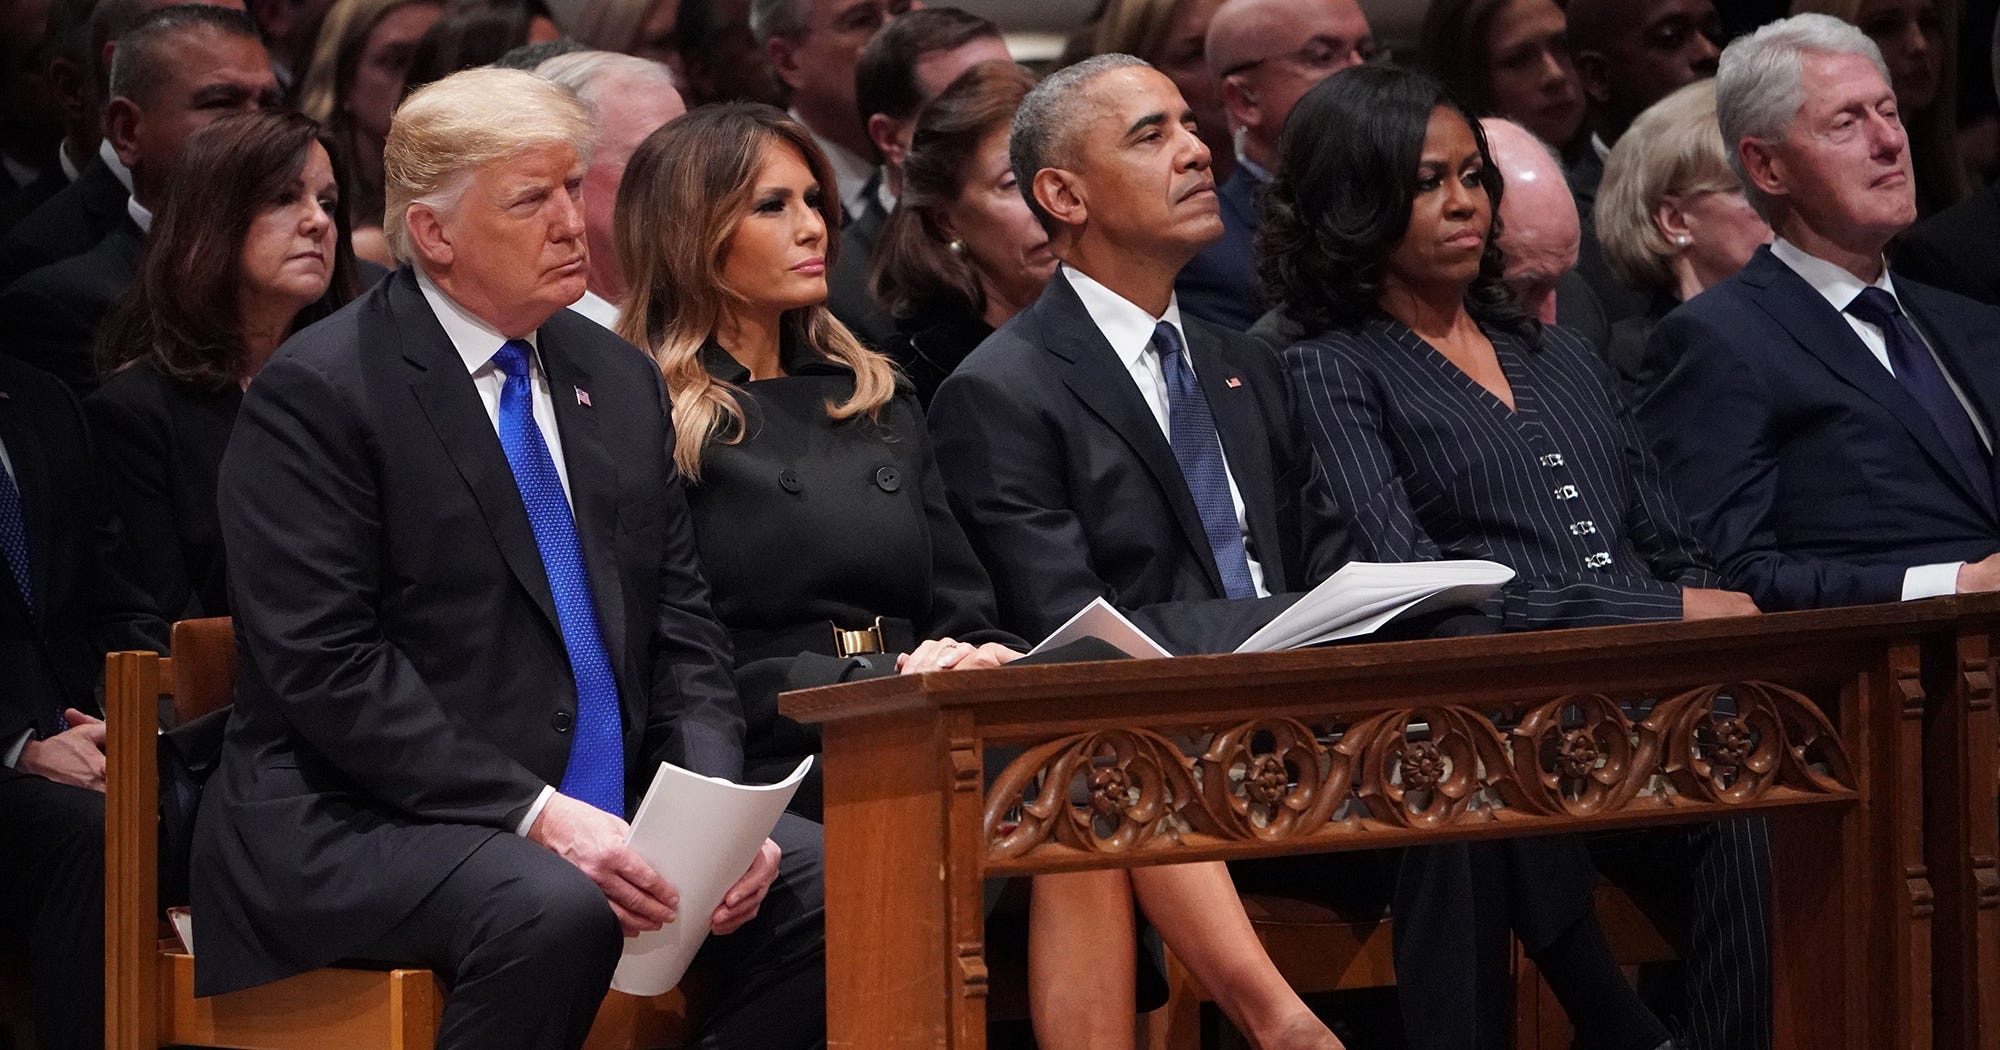 Michelle Obama Had To Sit Next To Trump Today — And Her Reaction Was Priceless.